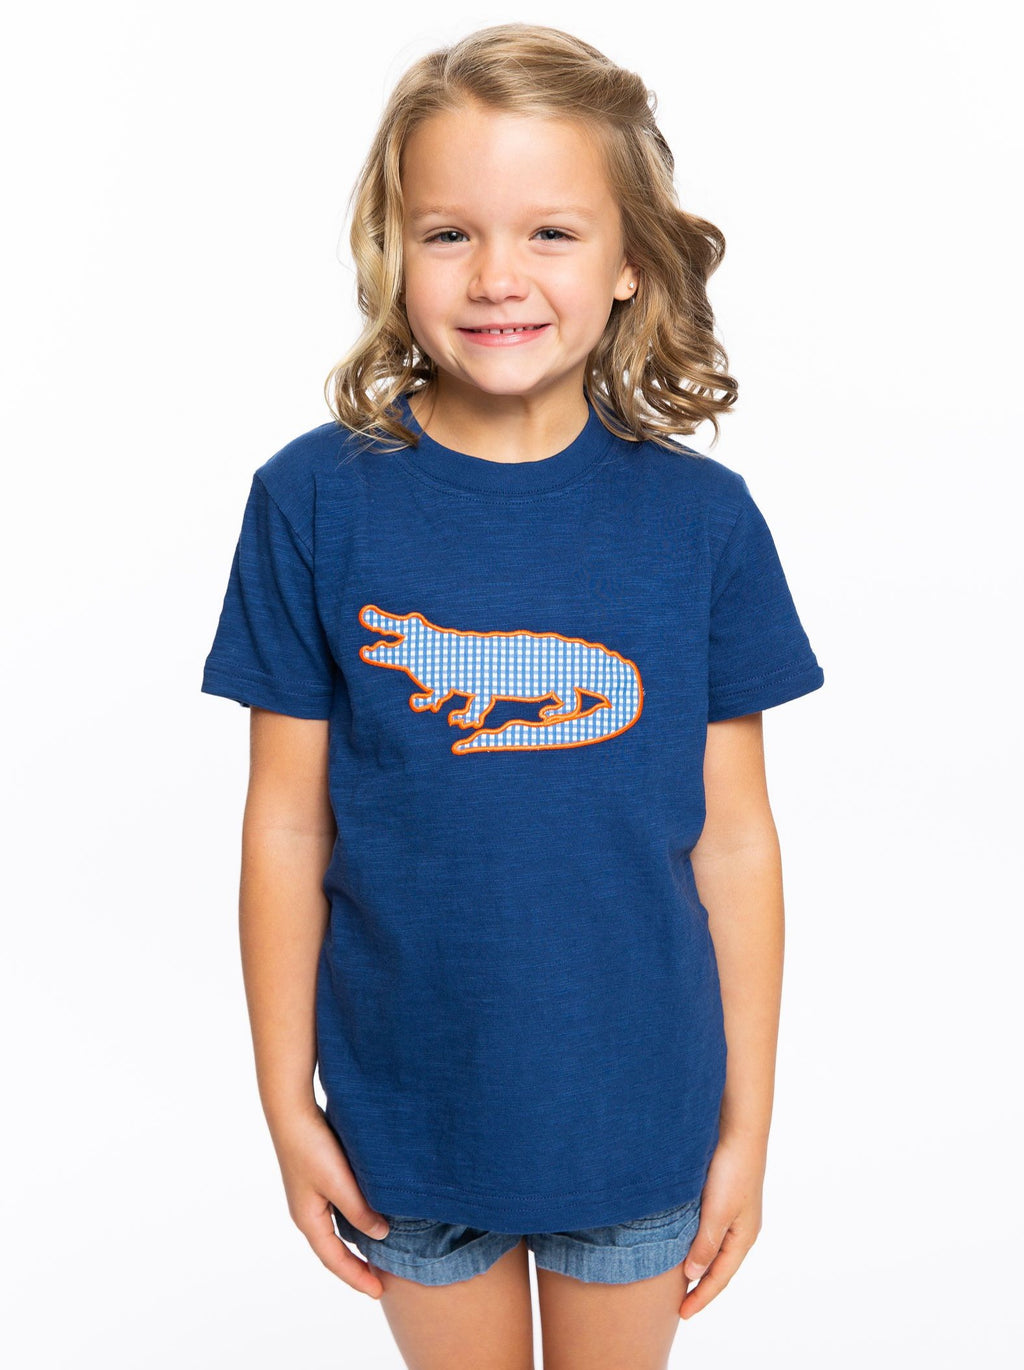 Gator Applique | Unisex Childs Tee